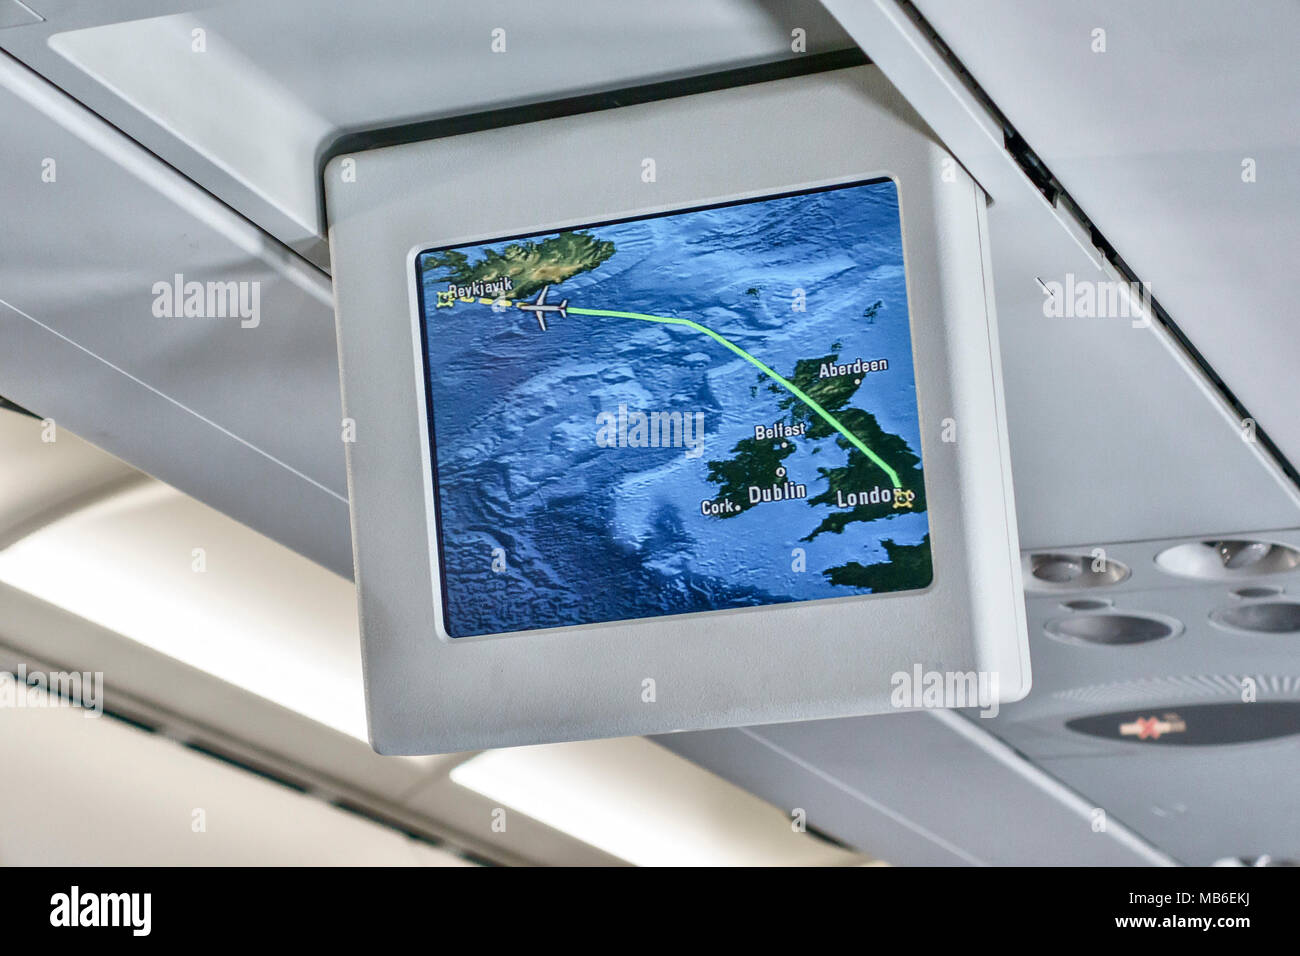 Interior of a British Airways Airbus A320 aircraft, showing a monitor screen displaying the flight path from London to Reykjavik - Stock Image